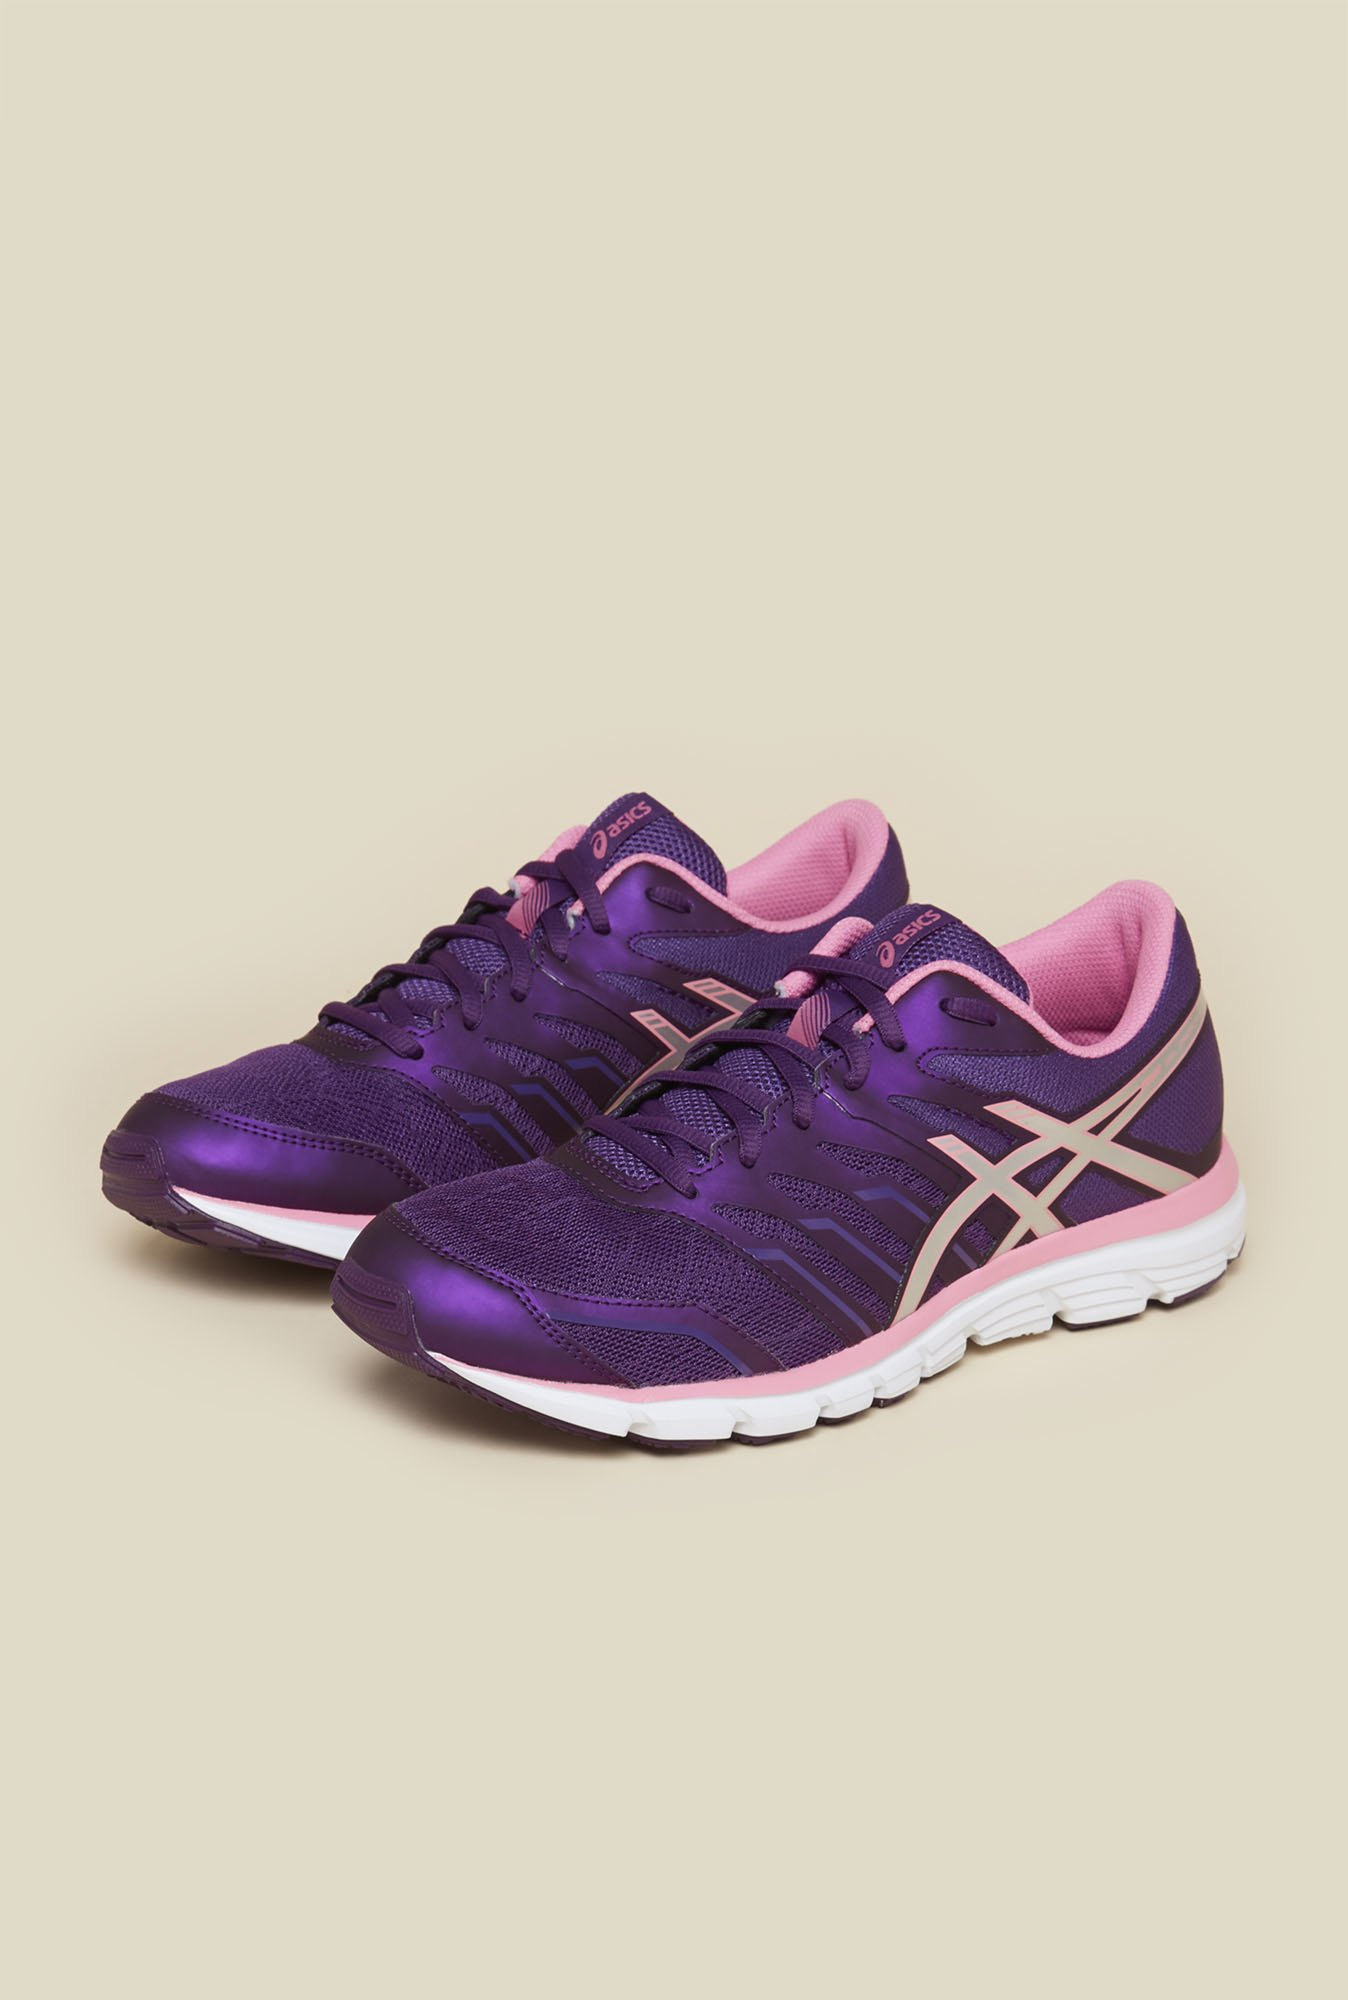 Asics GelZaraca 4 Women's Running Shoes